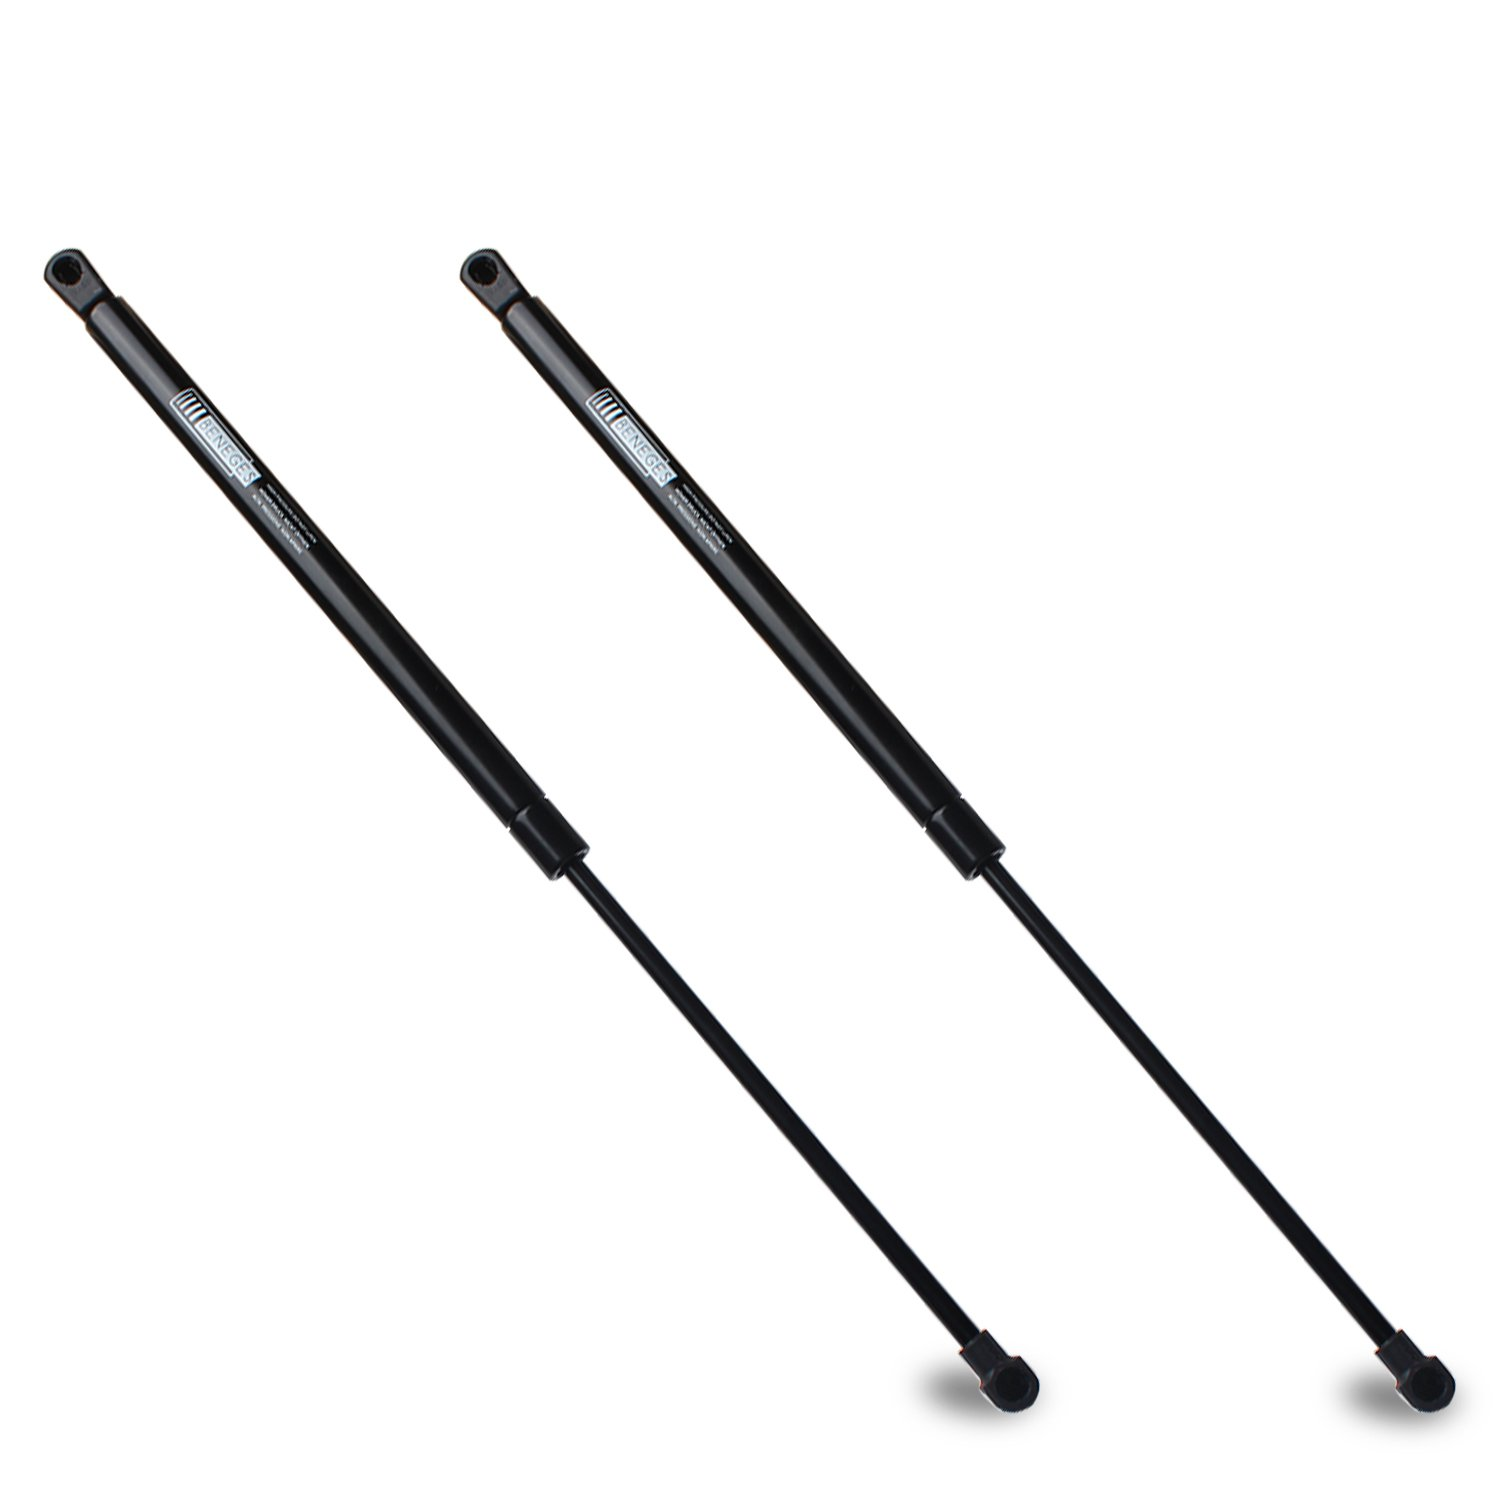 Beneges 2PCs Hood Lift Supports Compatible with 2010-2015 Lexus RX350 RX450h Front Hood Gas Spring Charged Struts Shocks Dampers 6755 SG229046 534400W200 PM3269